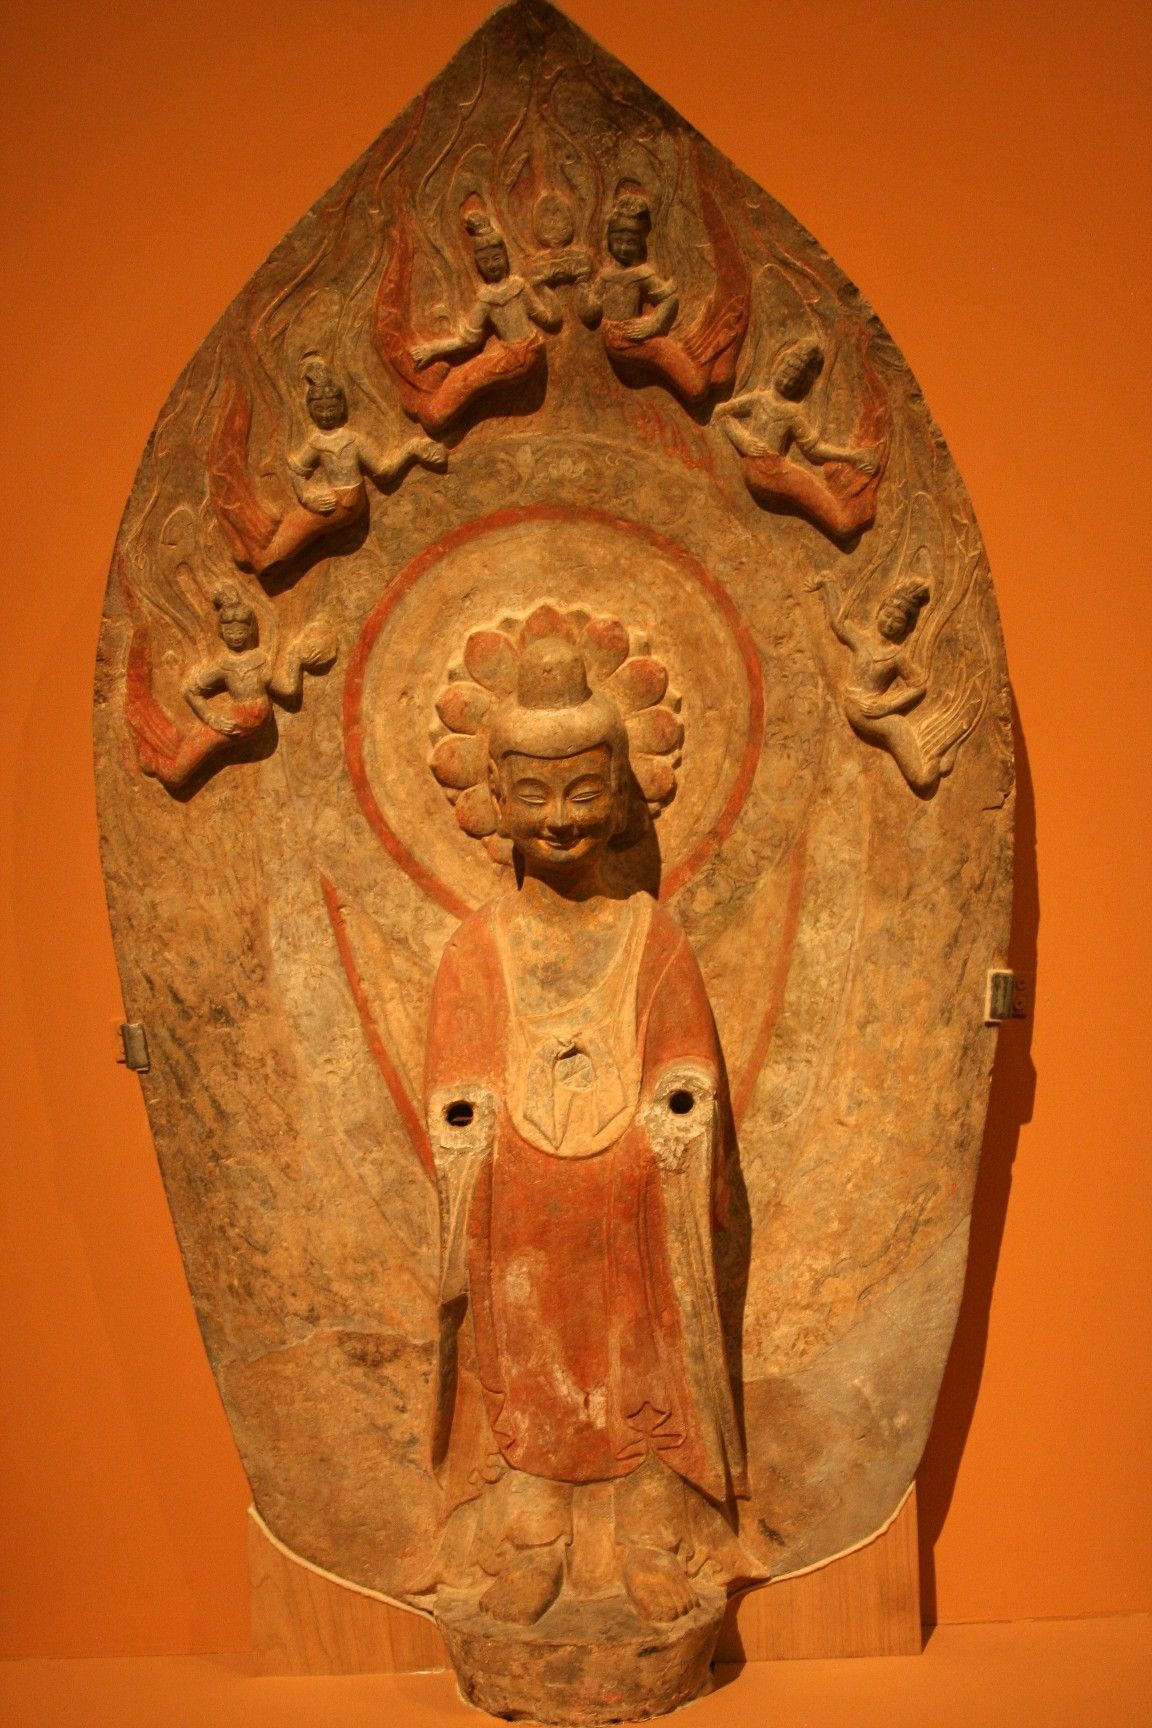 Buddha statue, Northern Wei Dynasty, (386 - 534), excavated from Long Xing Monastery, Qingzhou @ National Museum of China